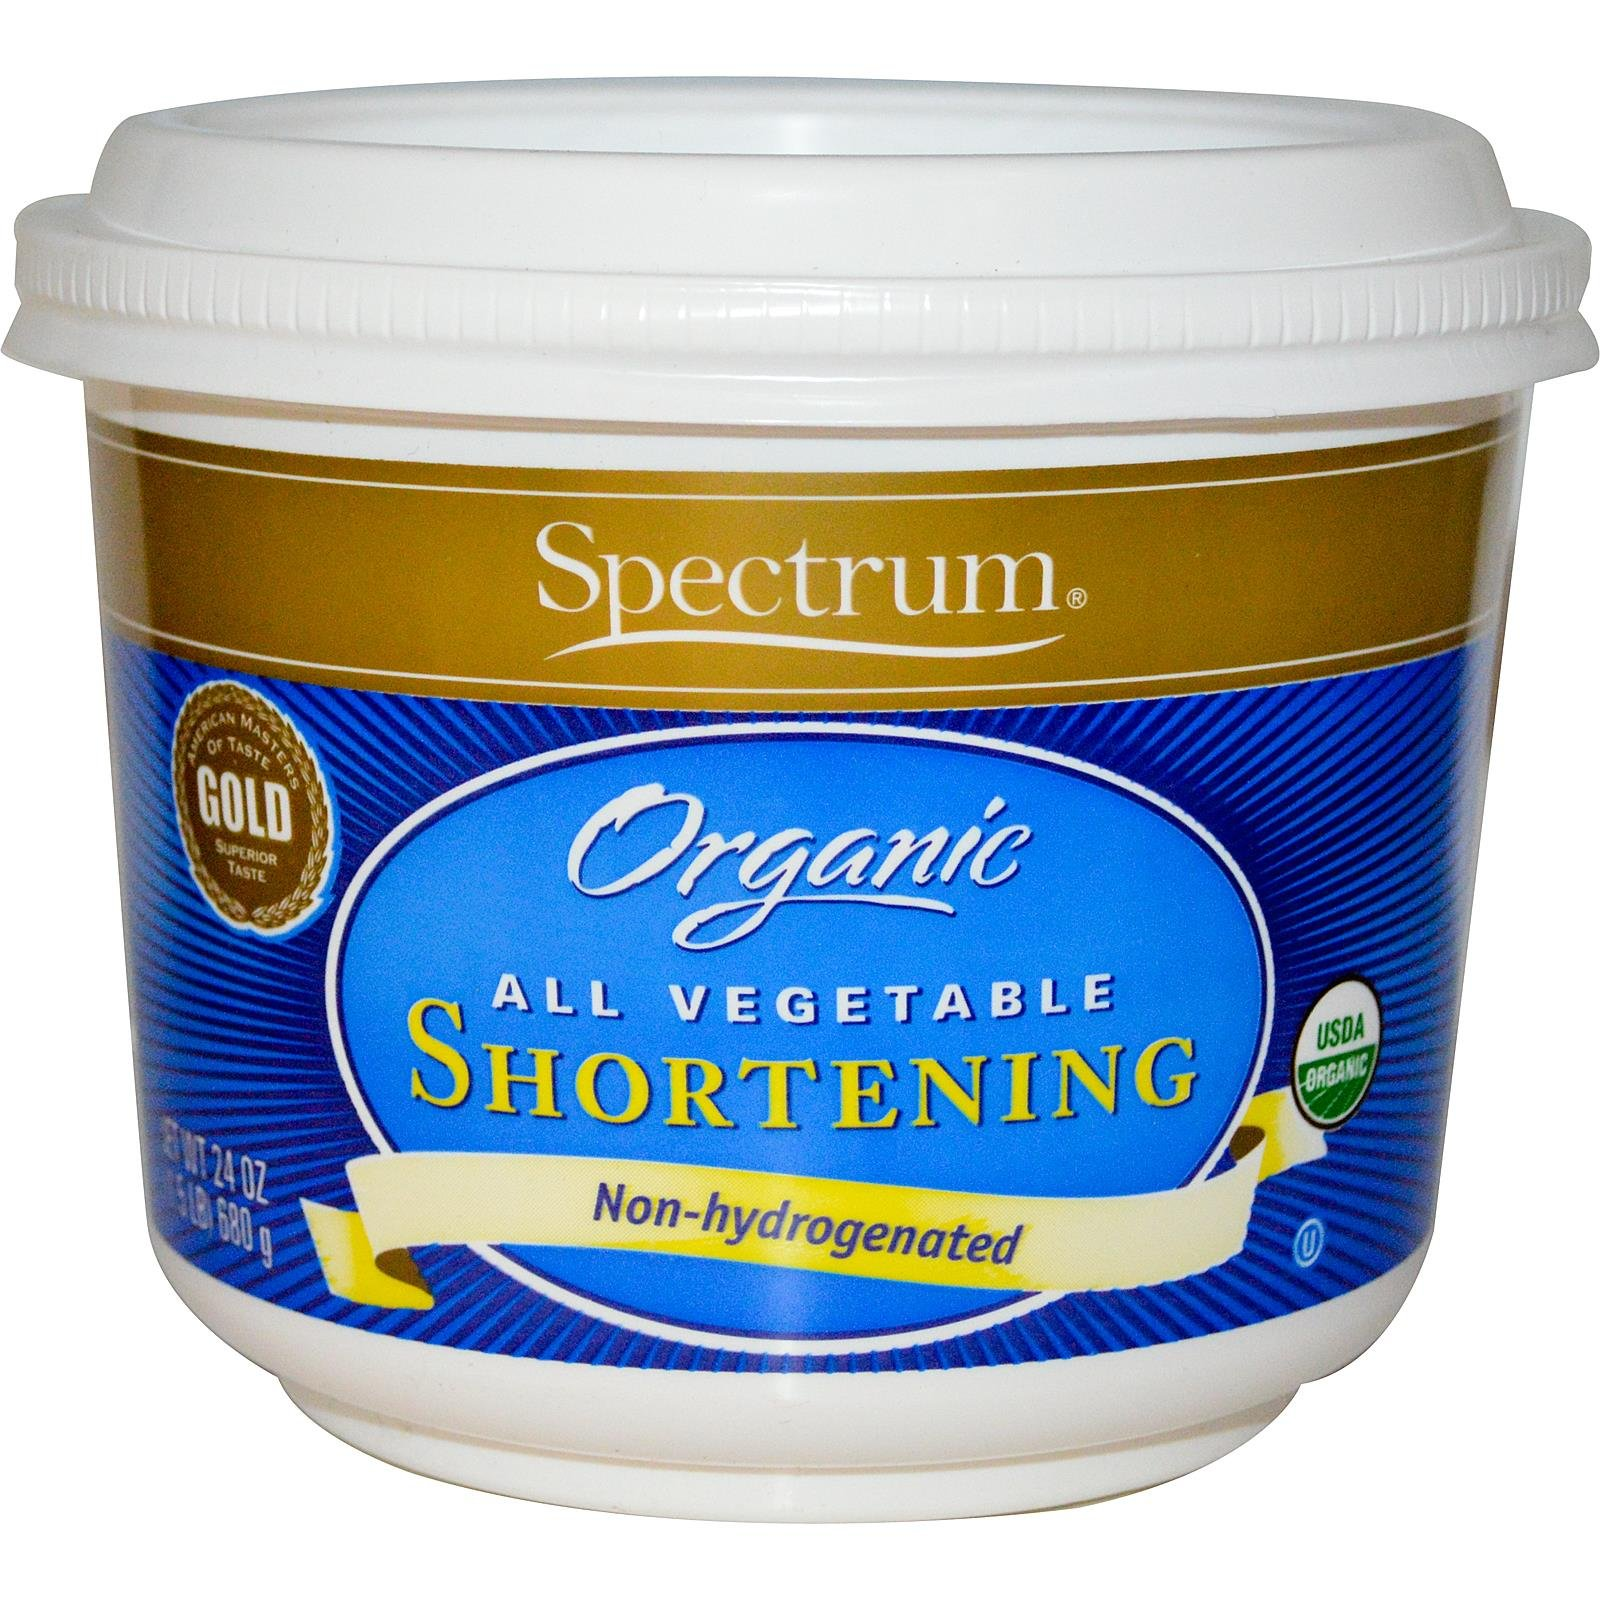 Spectrum Organic All Vegetable Shortening, 24 Ounce - 12 per case. by Spectrum